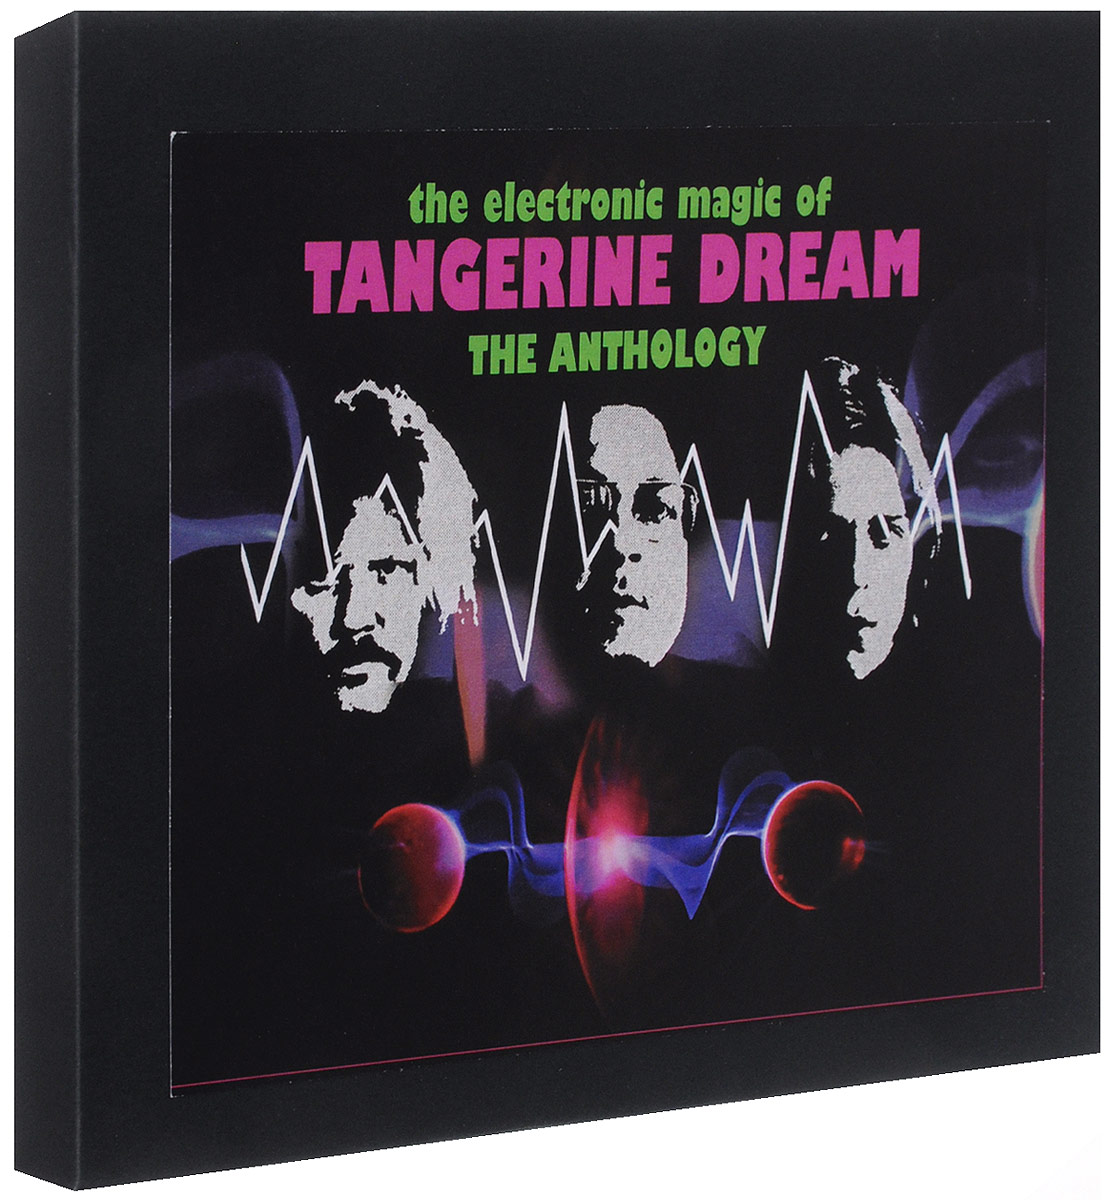 Tangerine Dream. The Electronic Magic Of Tangerine Dream (The Anthology) (2 CD)